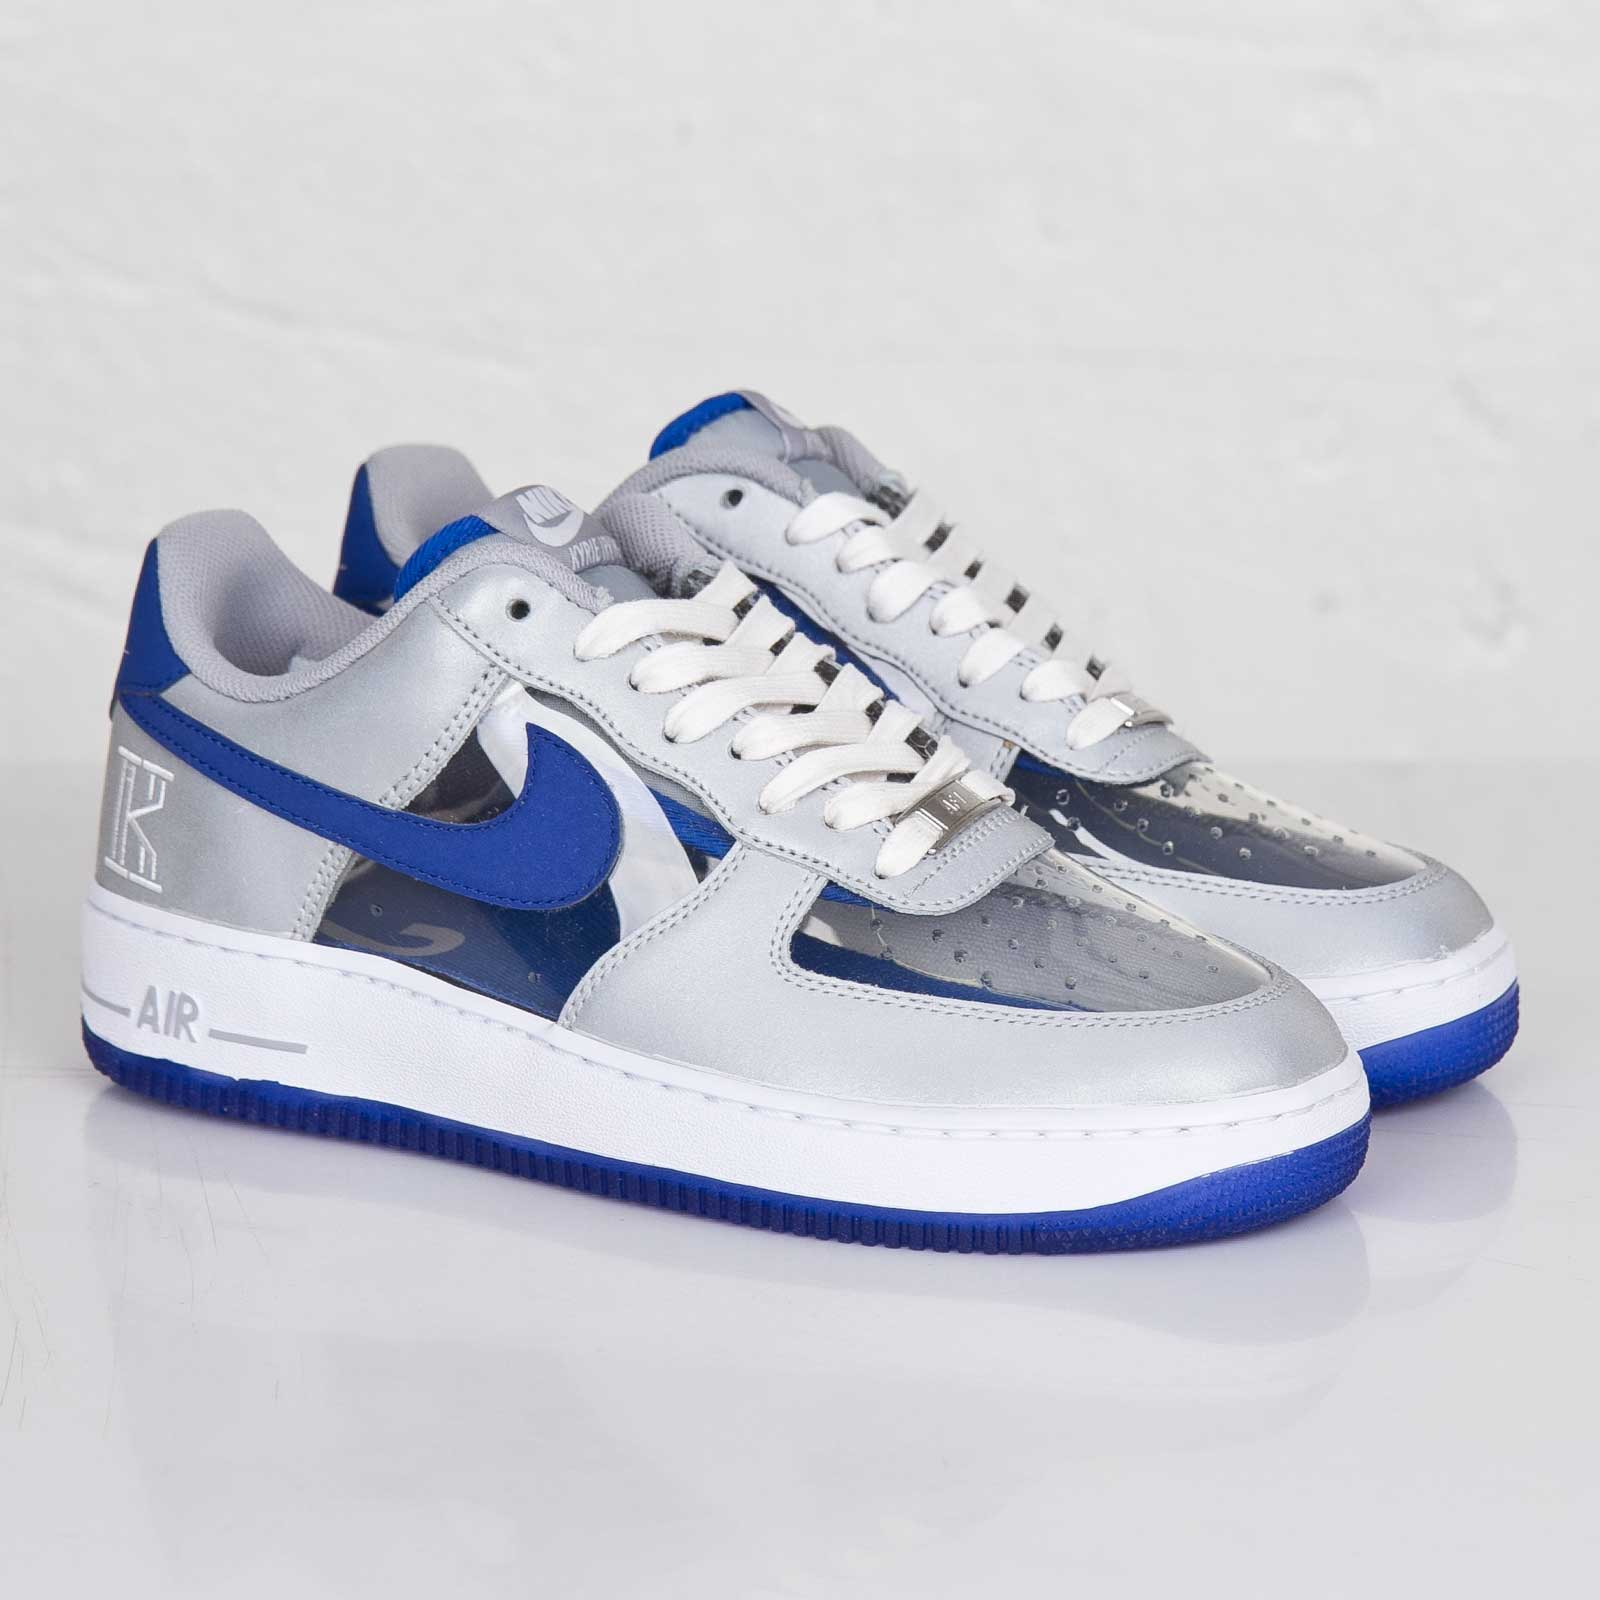 detailed look c260f 6fb3a promo code for nike air force 1 low cmft signature kyrie ...